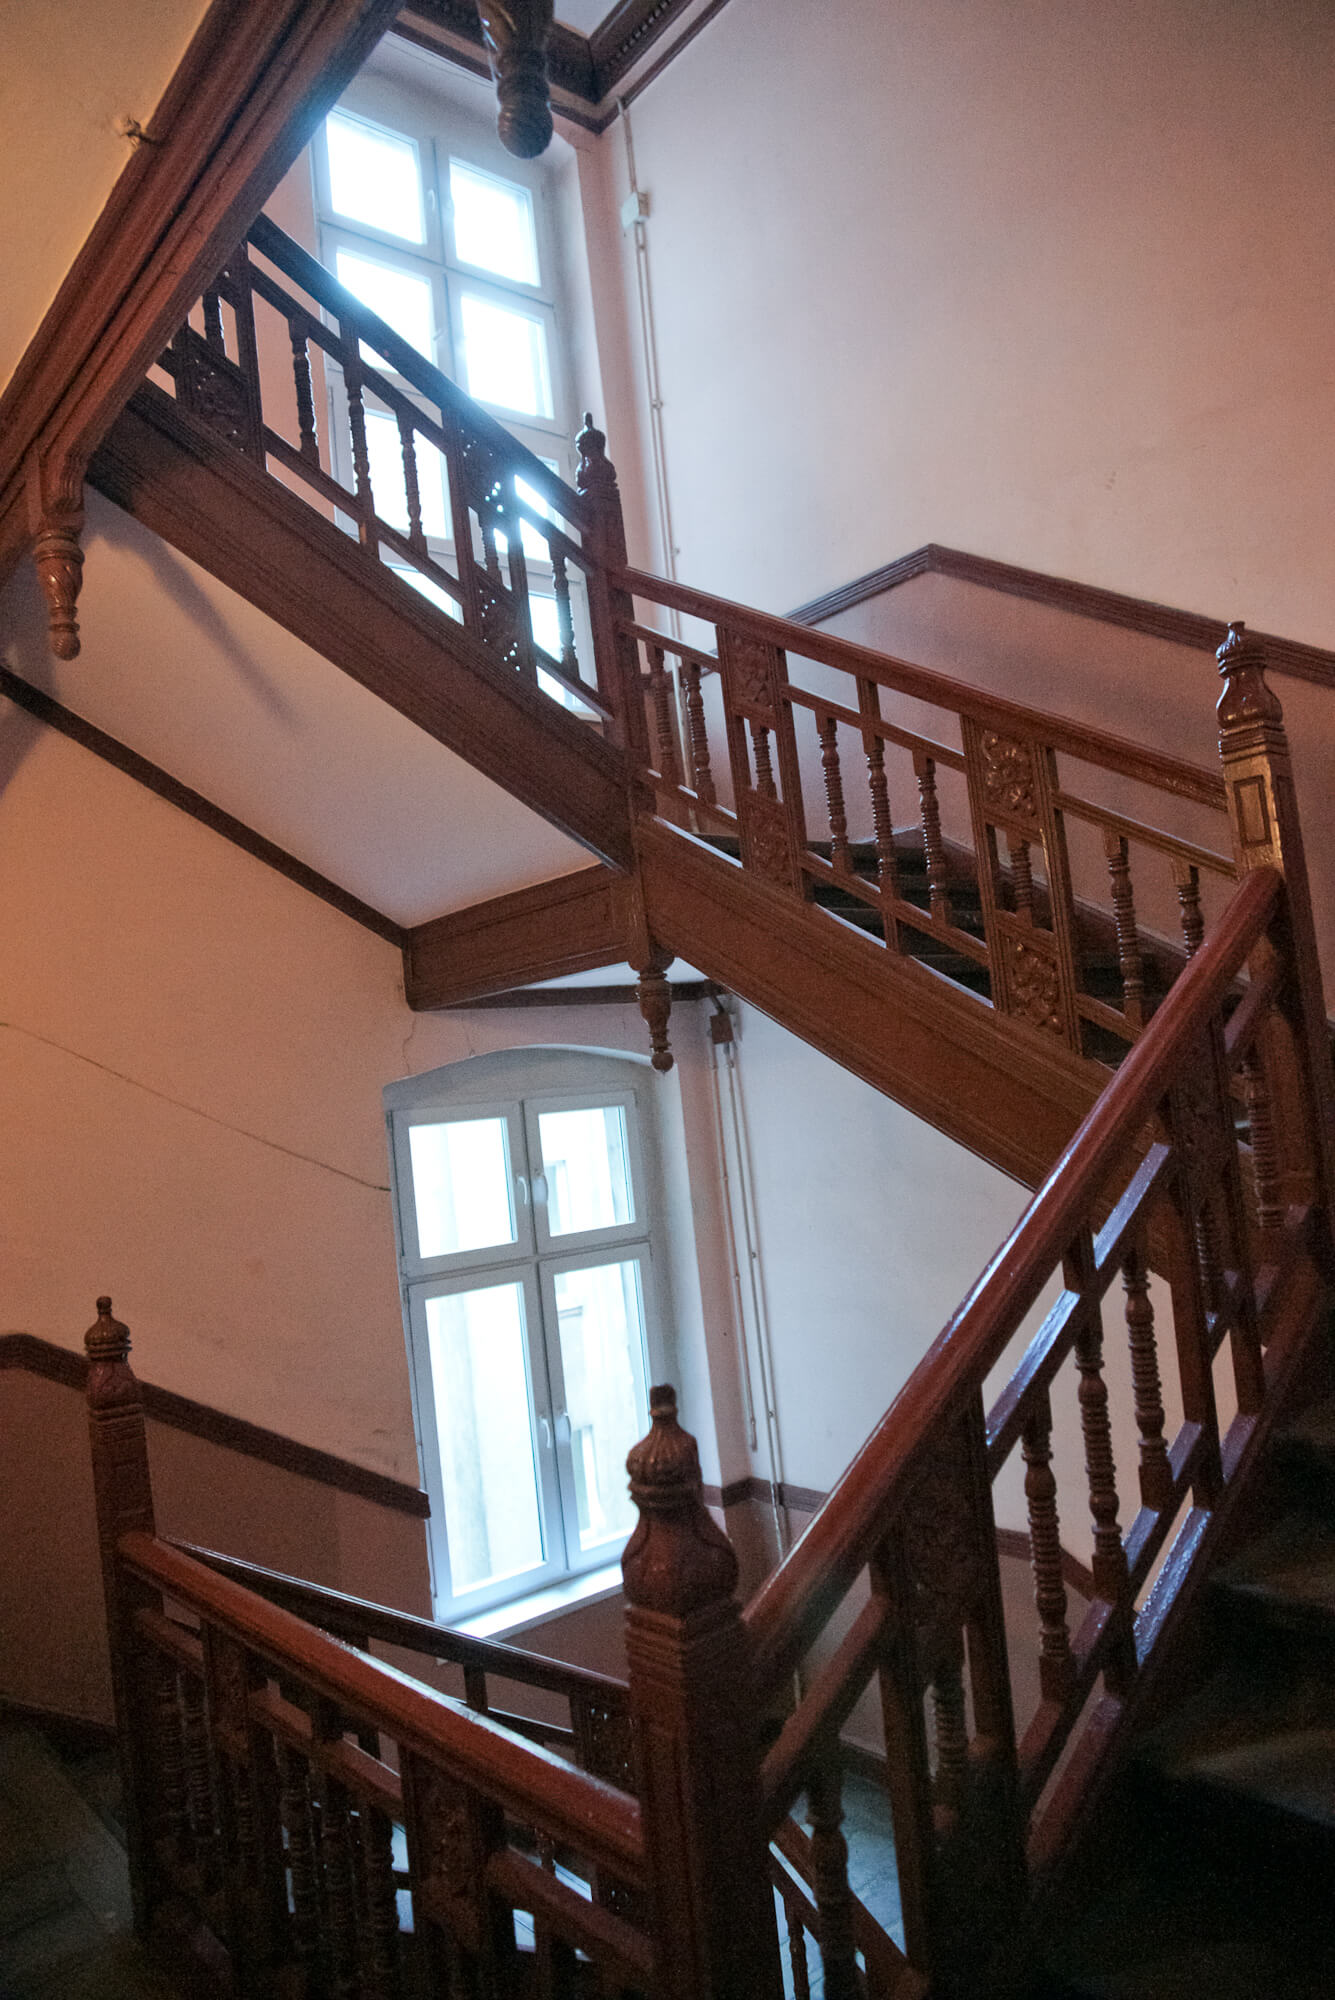 6. Staircase 2